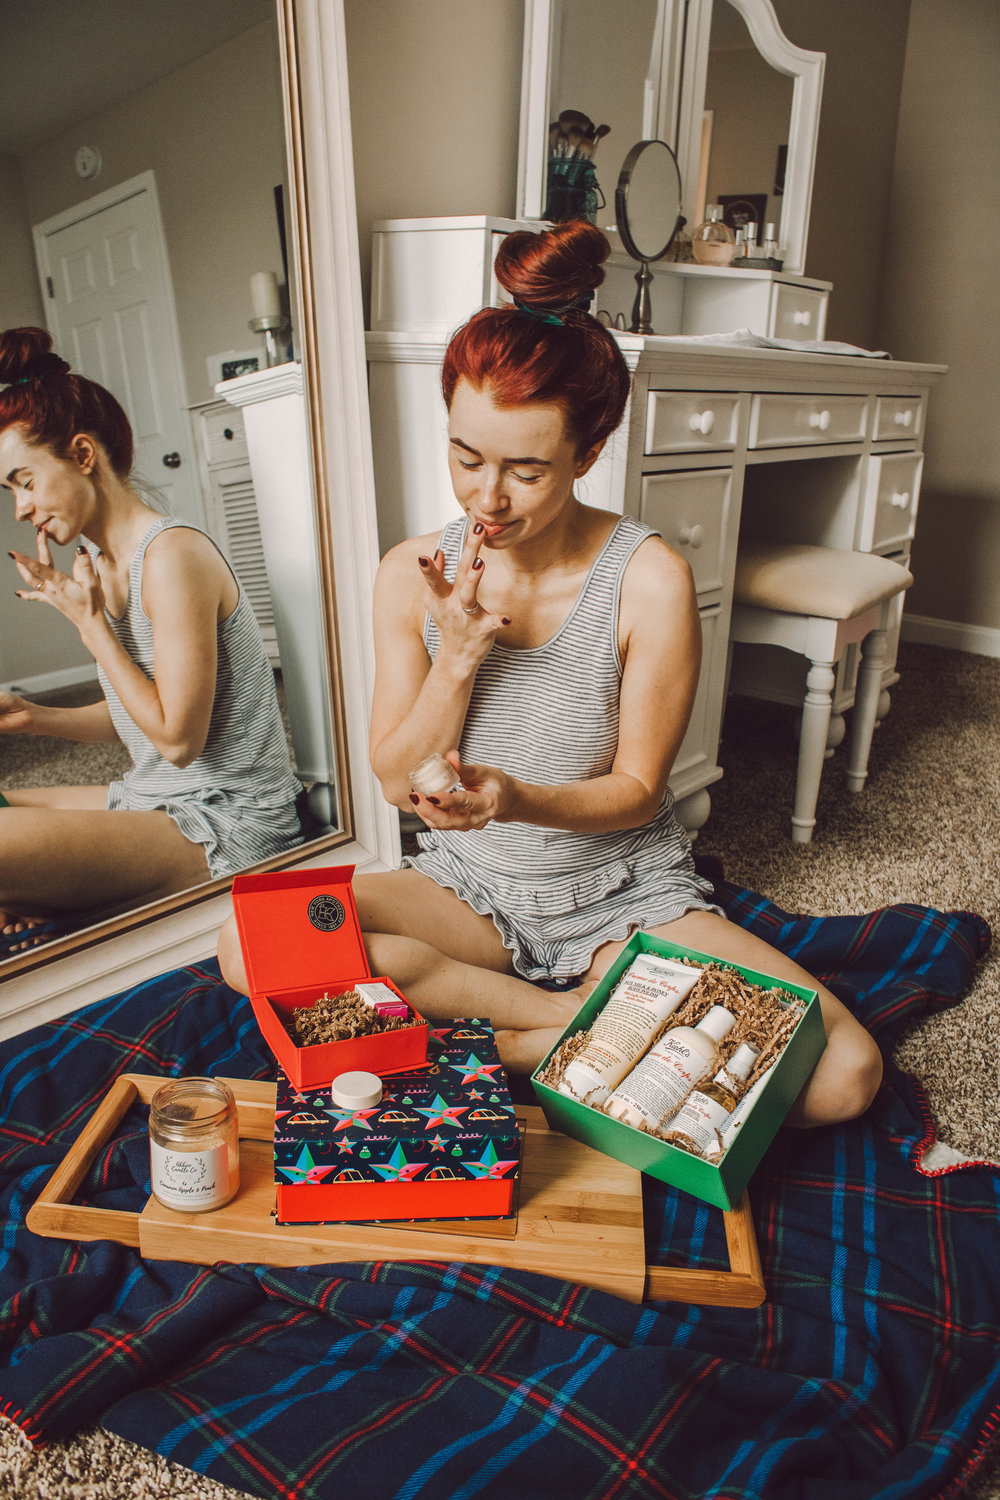 Beauty Gift Ideas with Kiehl's at The Fashion Mall, featured by top Indianapolis beauty blog, Trendy in Indy: image of a woman opening Holiday gifts